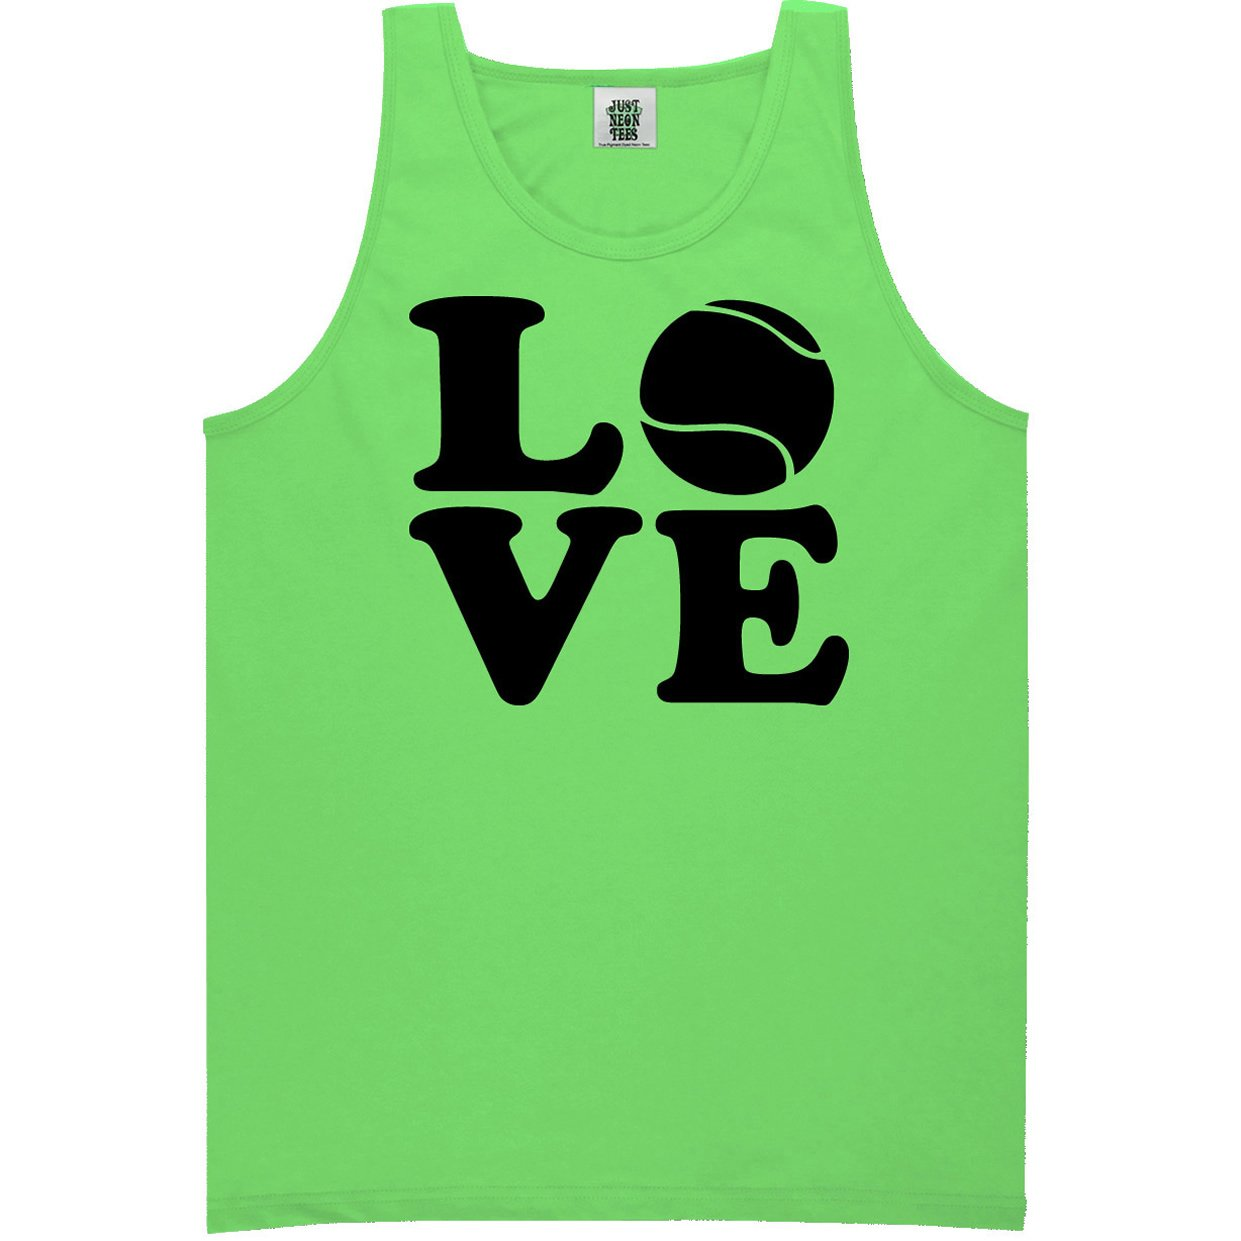 Love Tennis Bright Neon Tank Top PA-NEON-326-TK